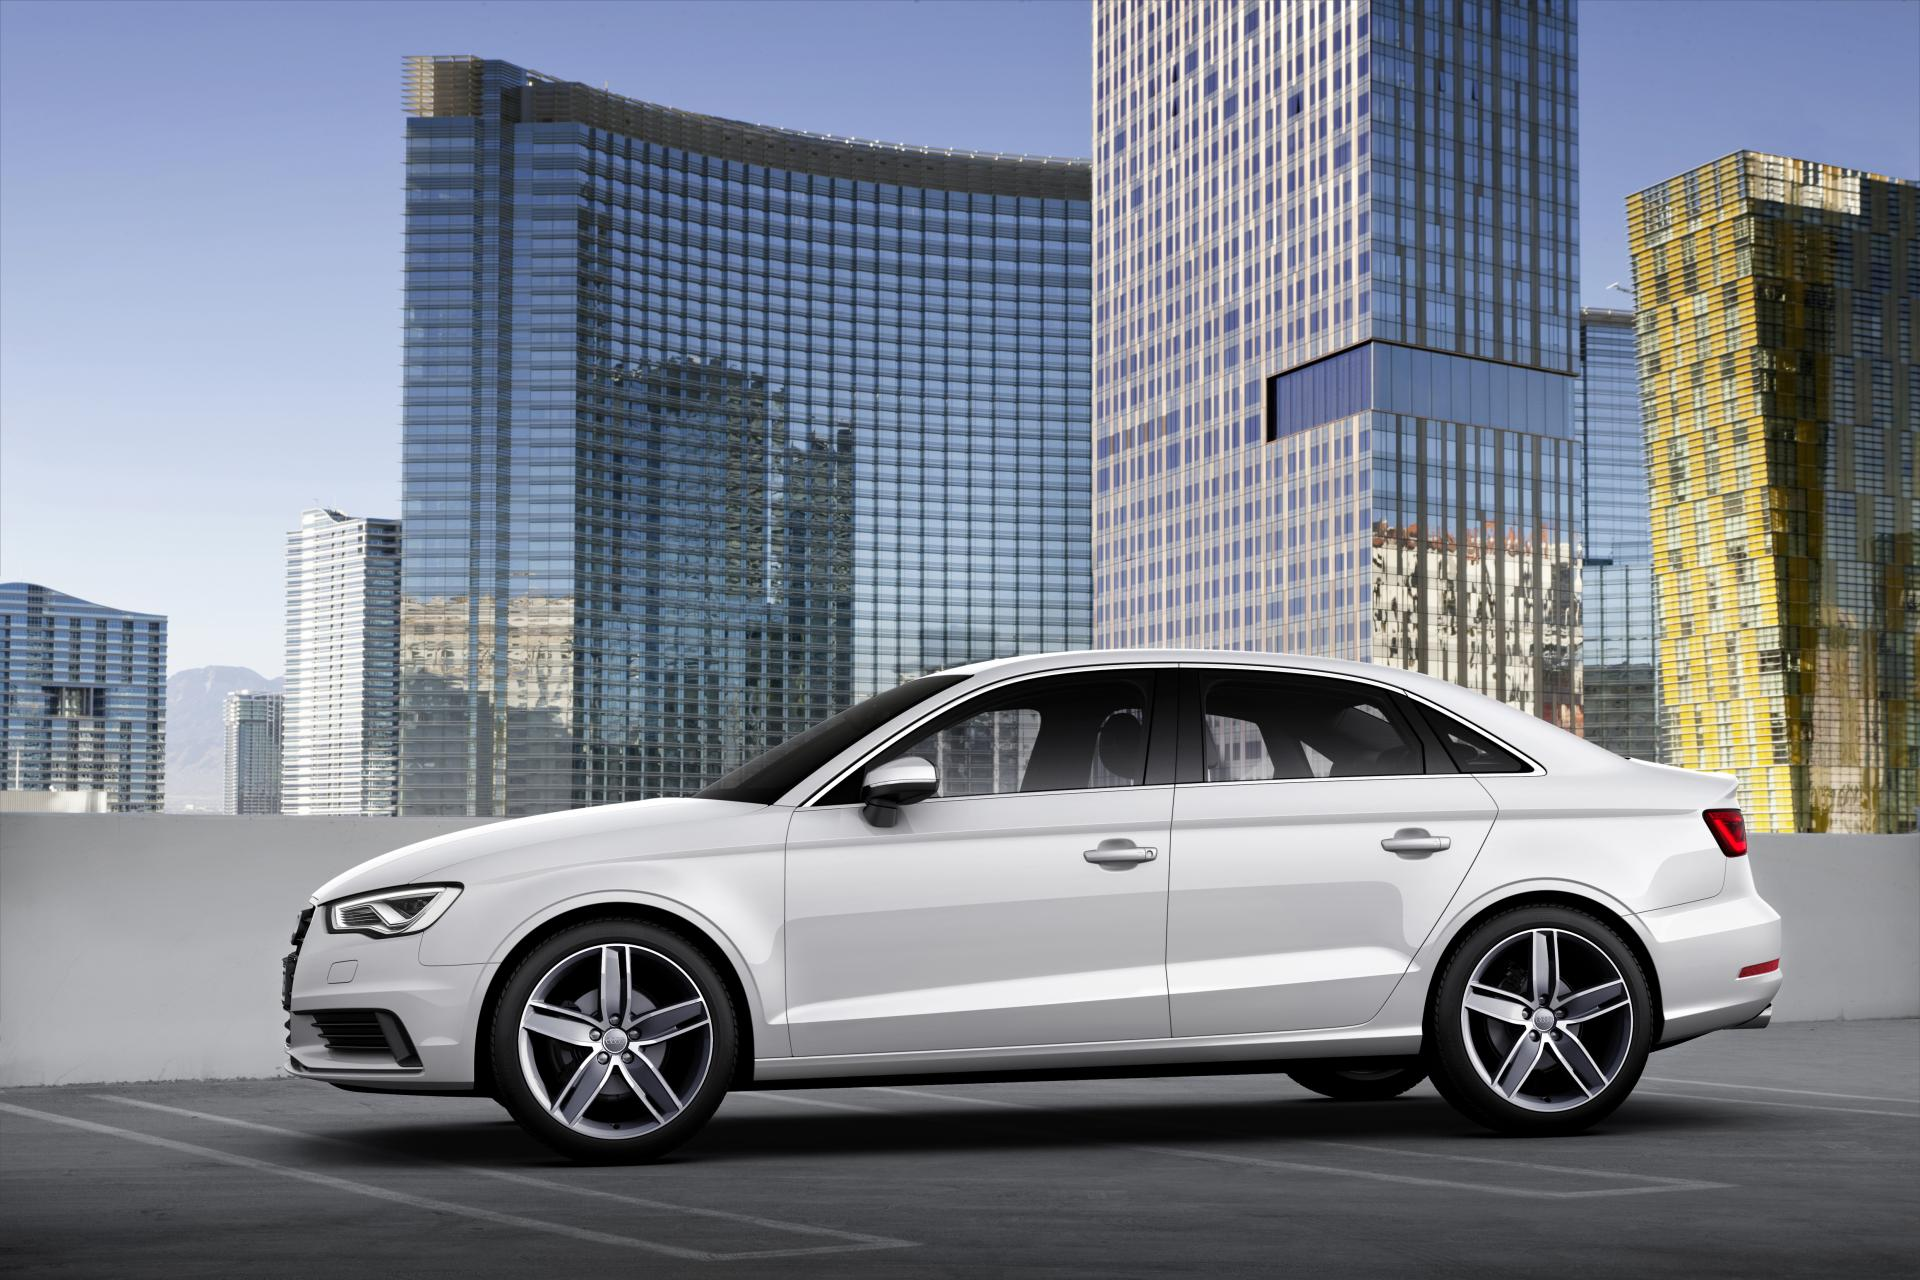 2014 Audi A3 Sedan News And Information Conceptcarz Com